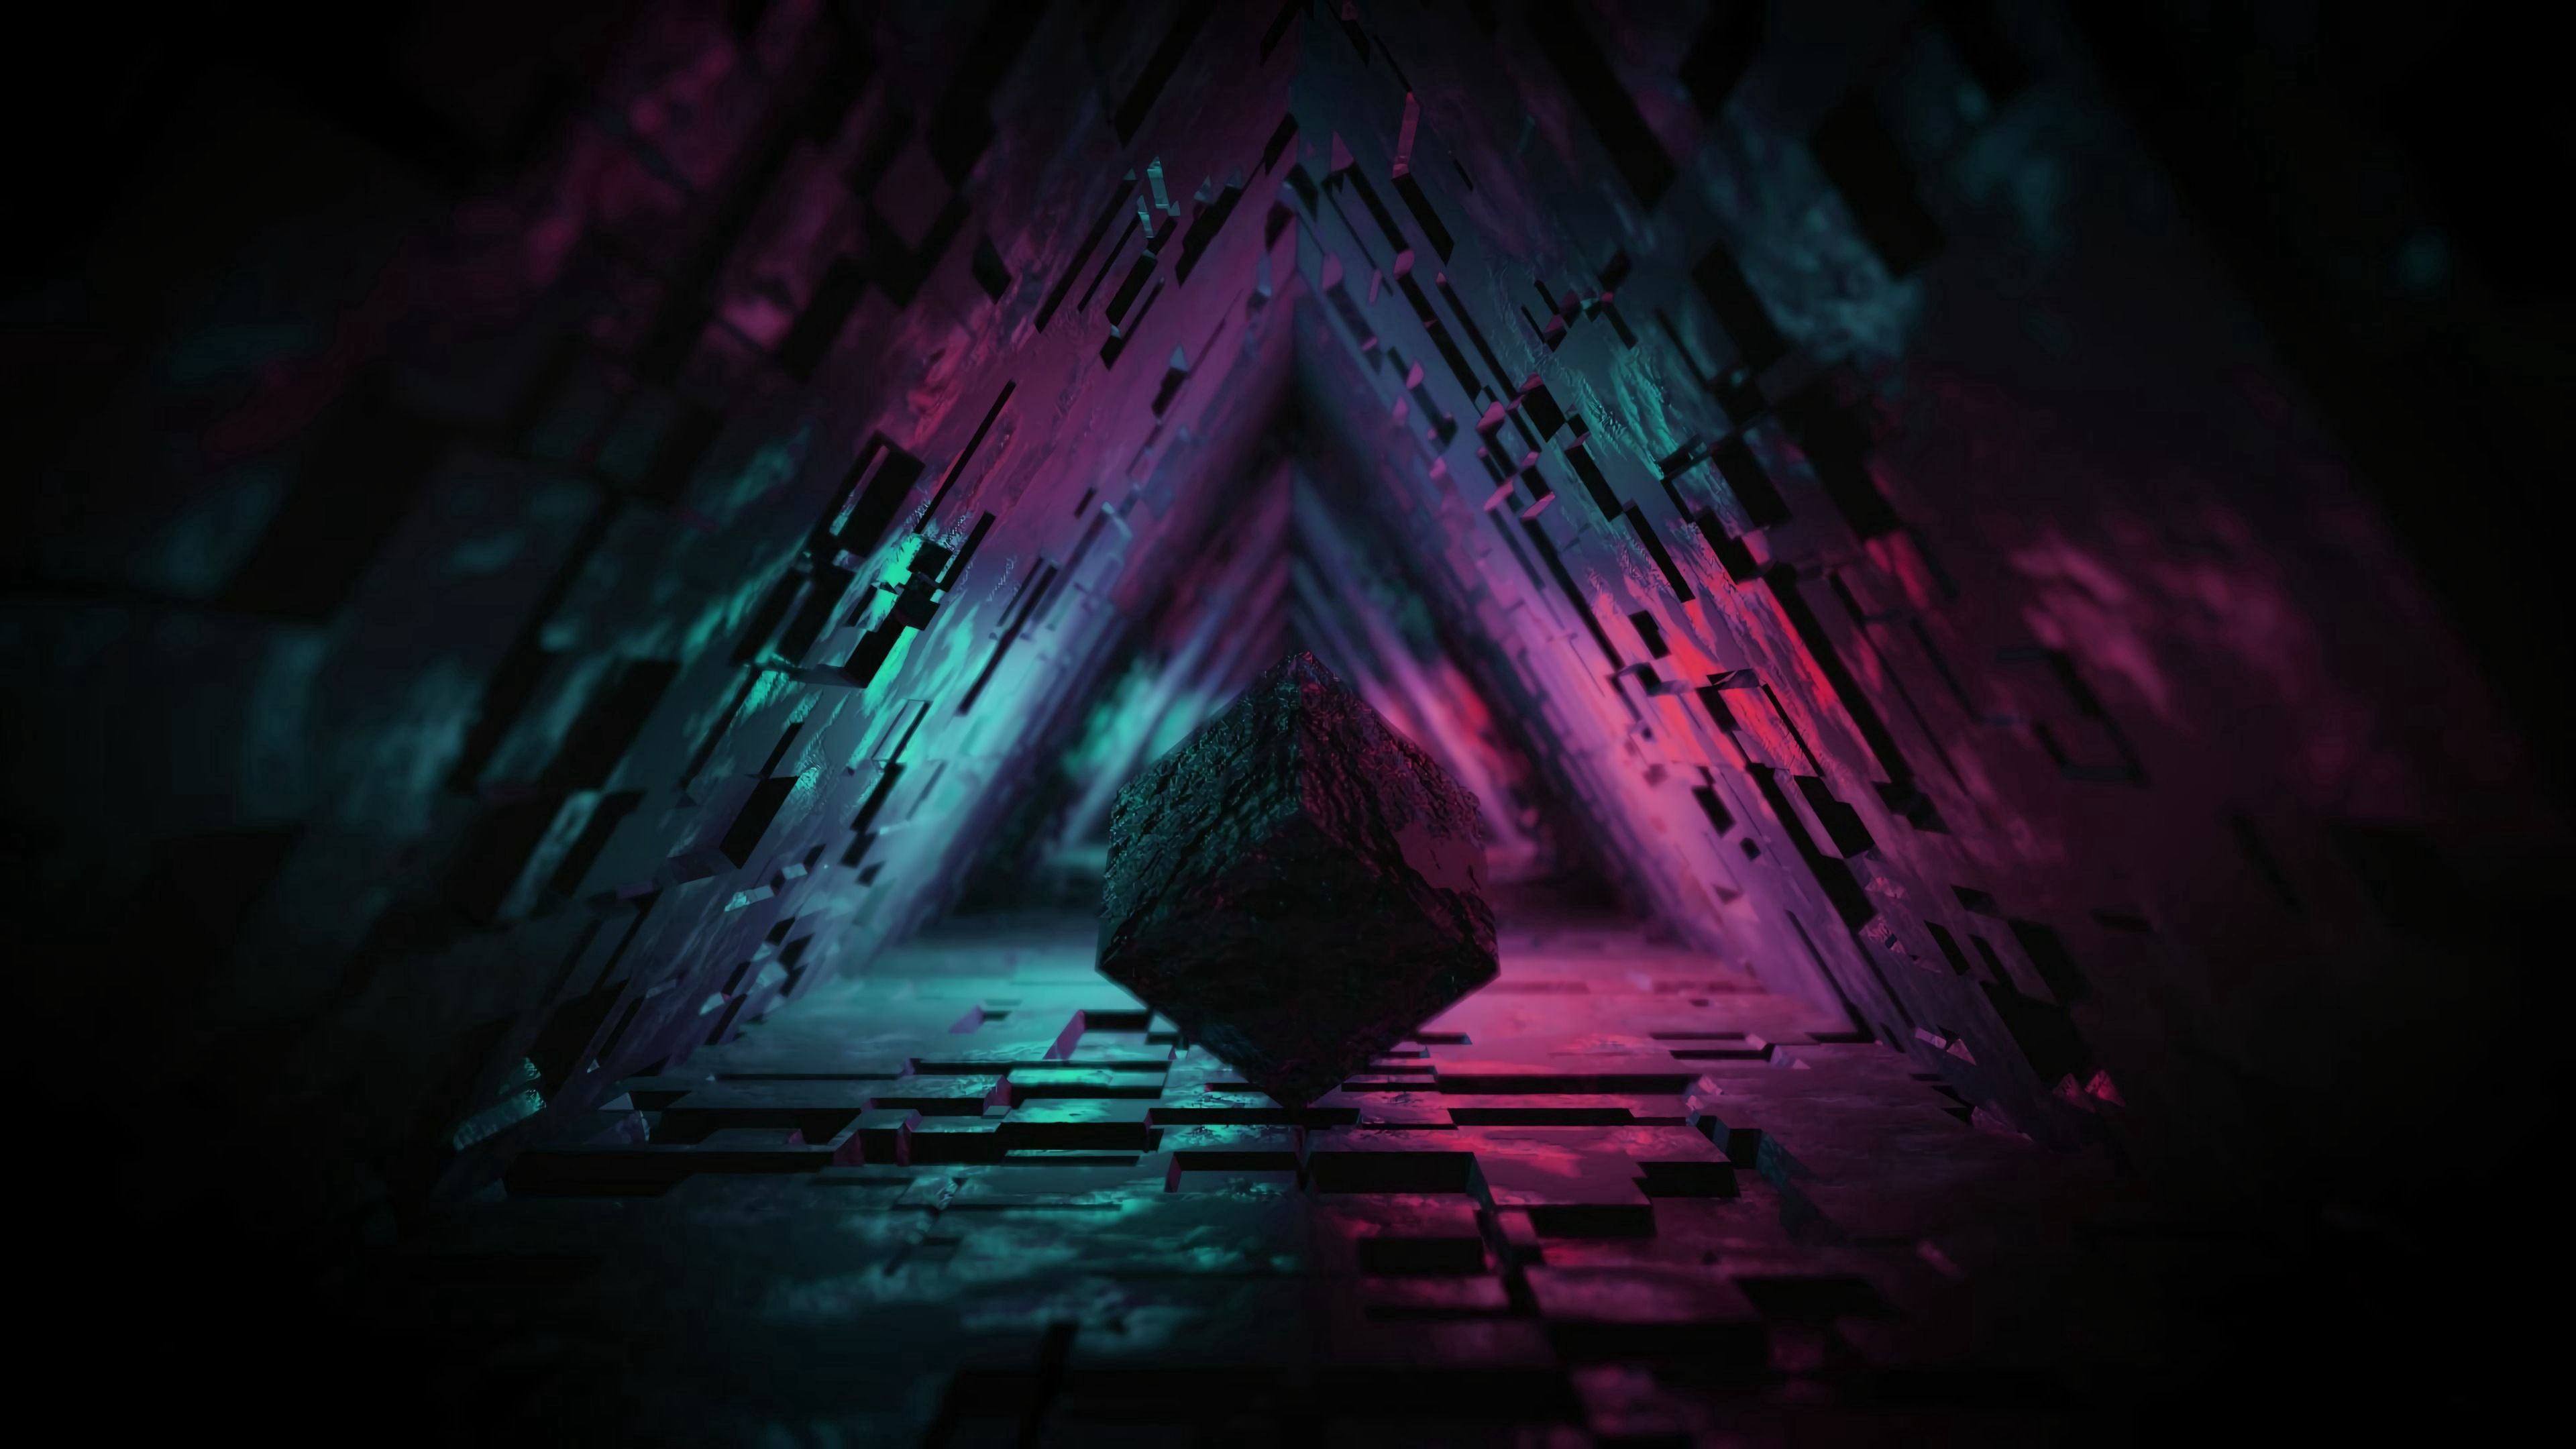 148780 download wallpaper 3D, Dark, Backlight, Illumination, Figure, Tunnel, Cube screensavers and pictures for free